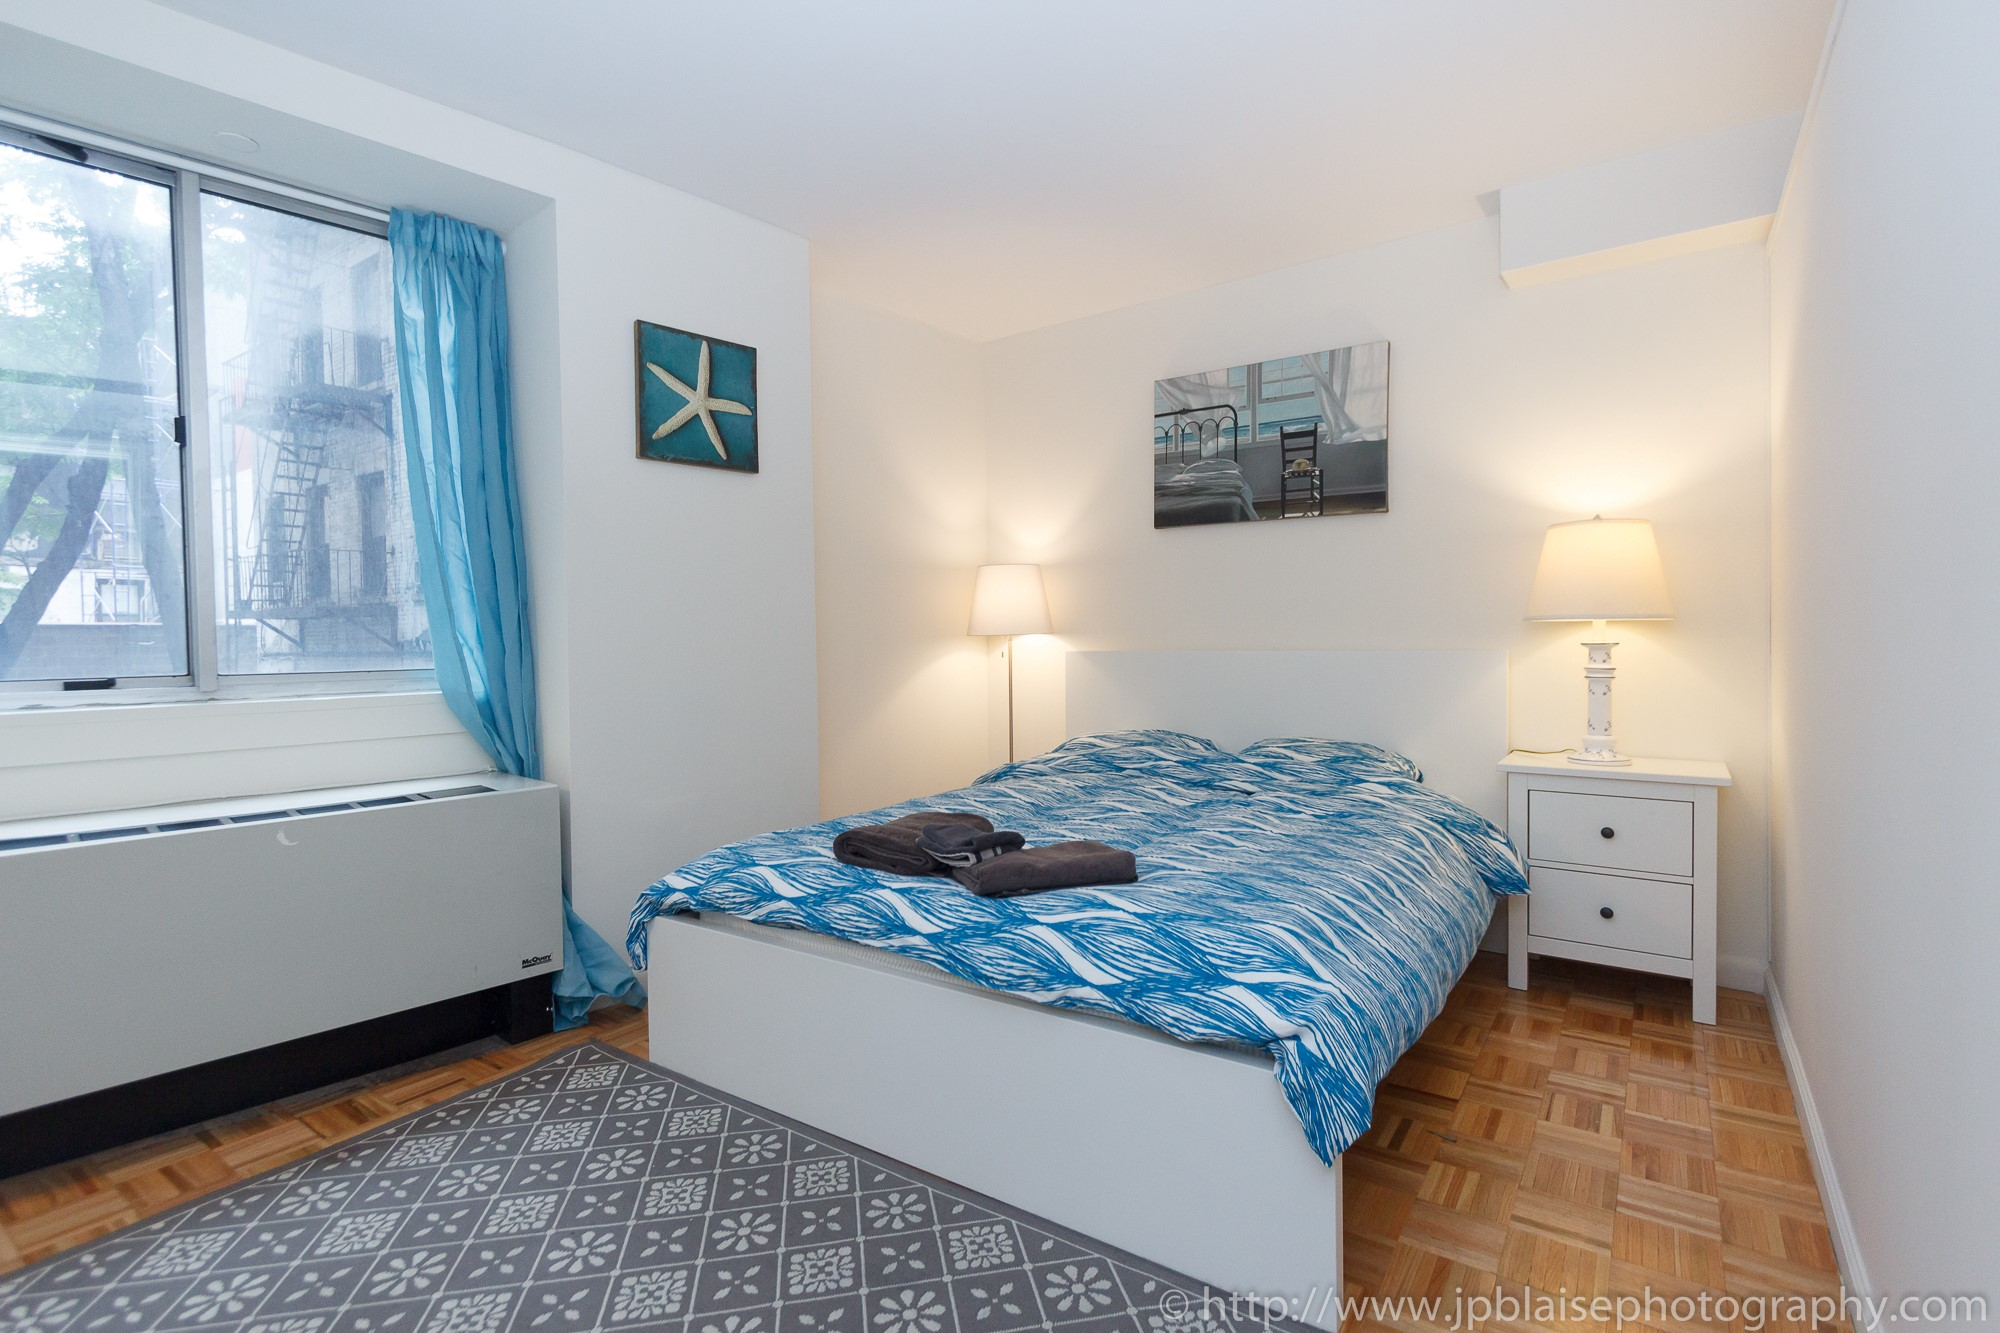 Apartment-photographer-New-York-City-Two-Bedroom-Midtown-East-NY-Bed-1